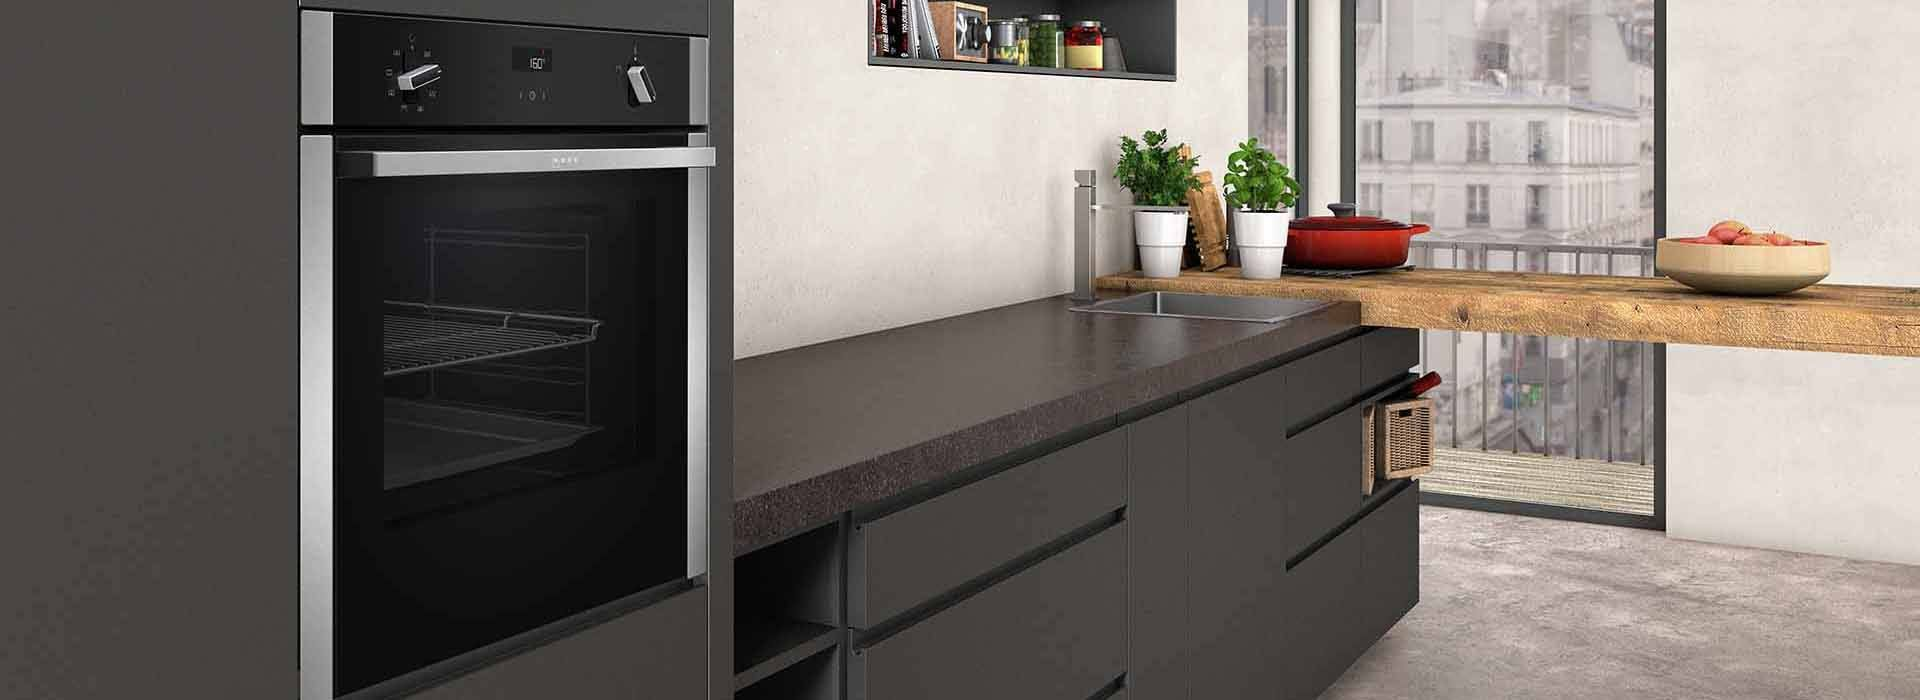 neff kitchen medium large